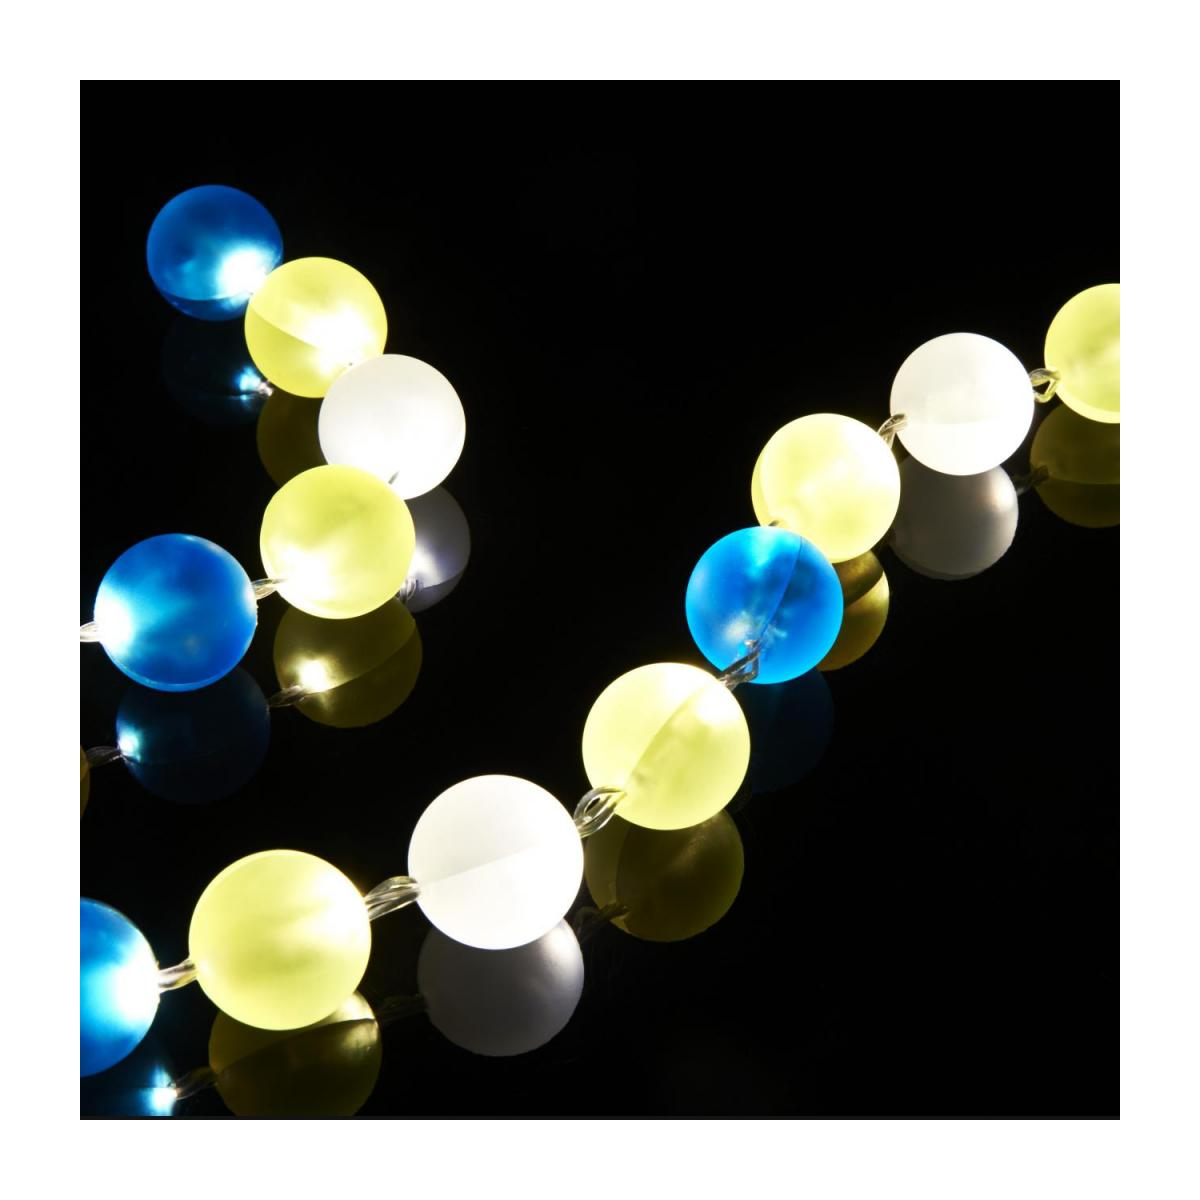 24-light fairy lights with yellow and blue baubles n°2